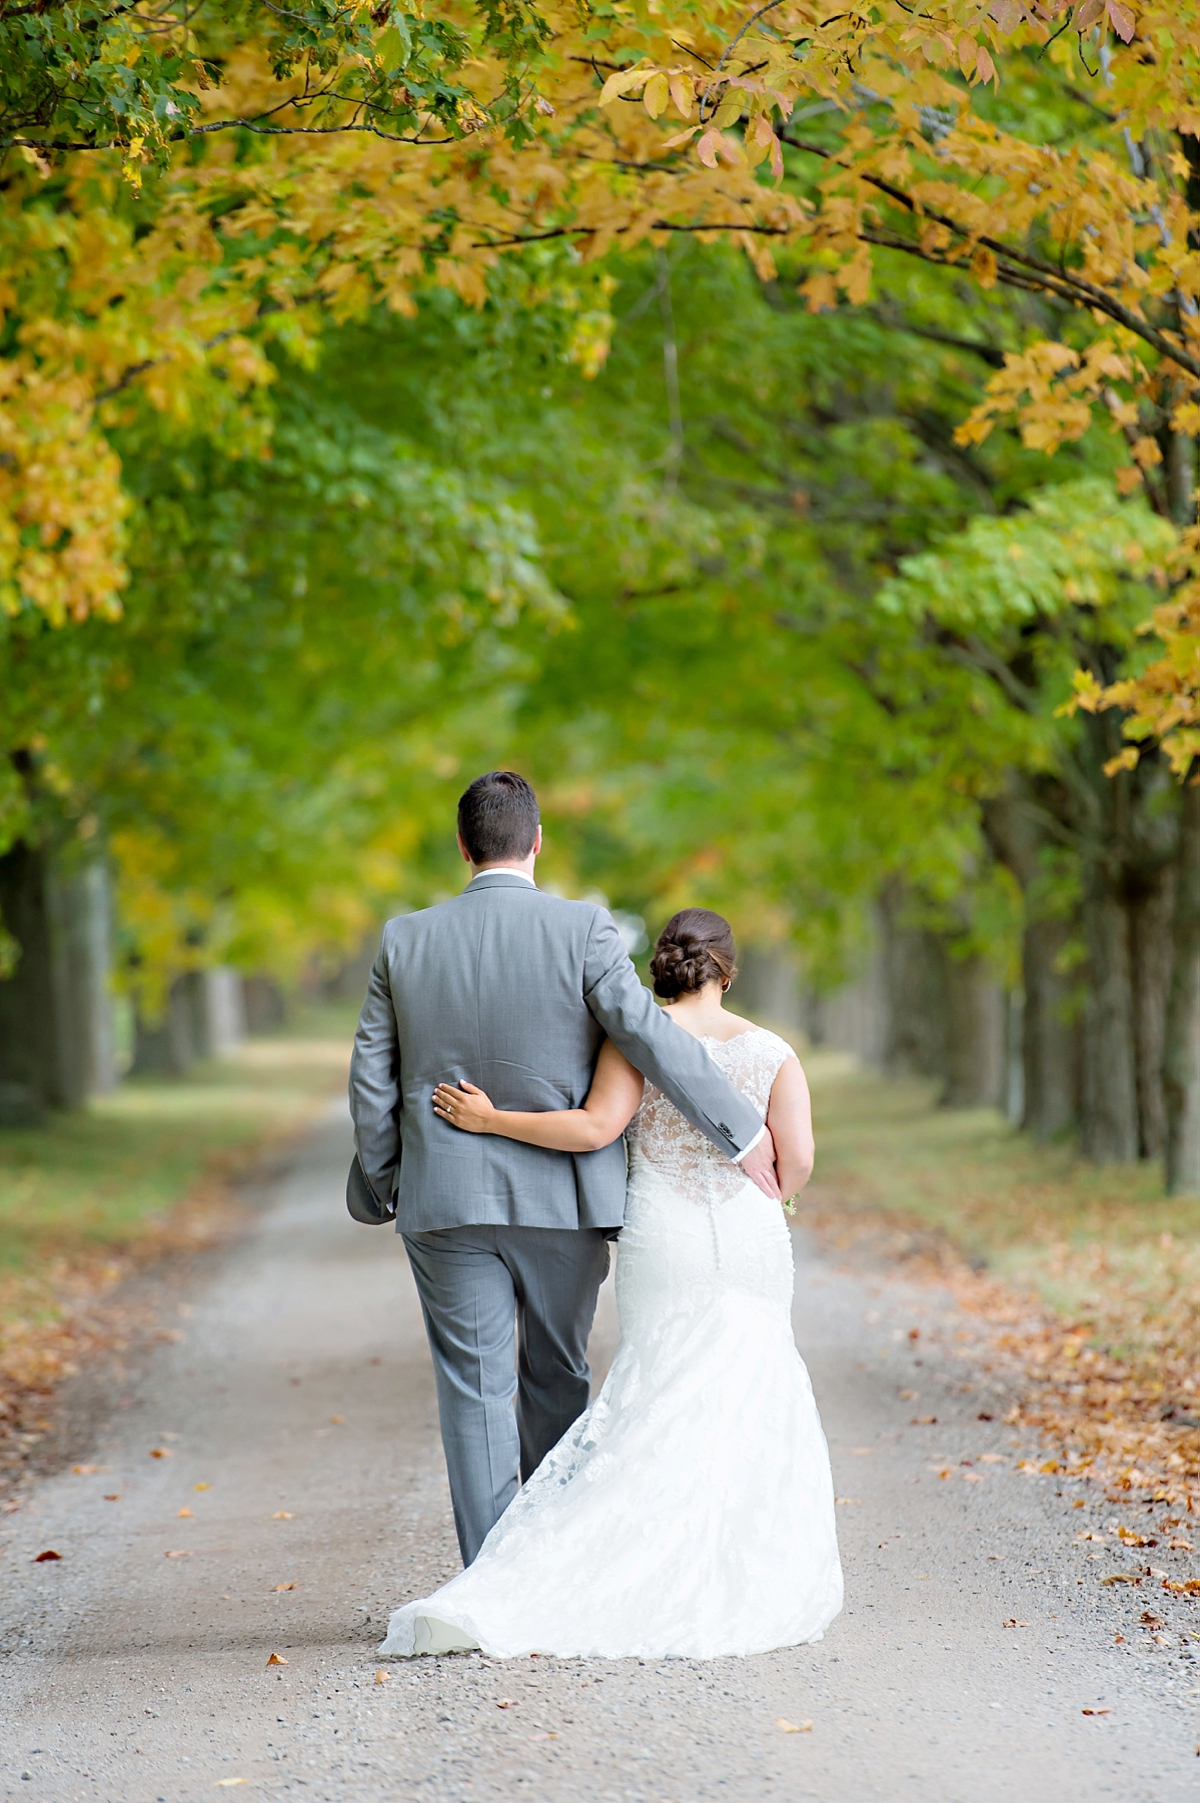 Andrea + Kenzie- A Fall Apple Orchard Wedding   |  Candace Berry Photography056